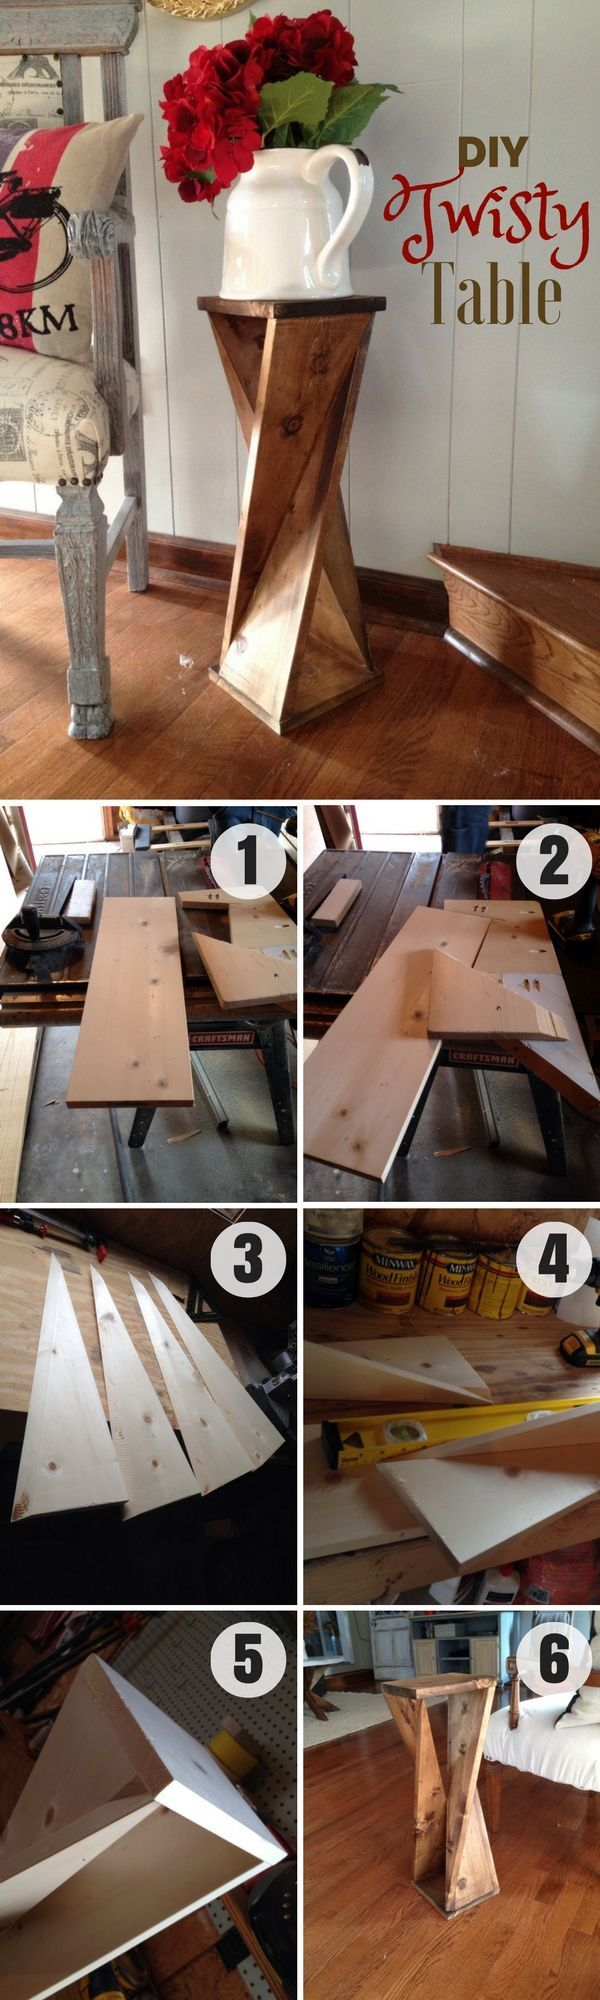 Check out how to make this easy DIY Twisty Table /istandarddesign/